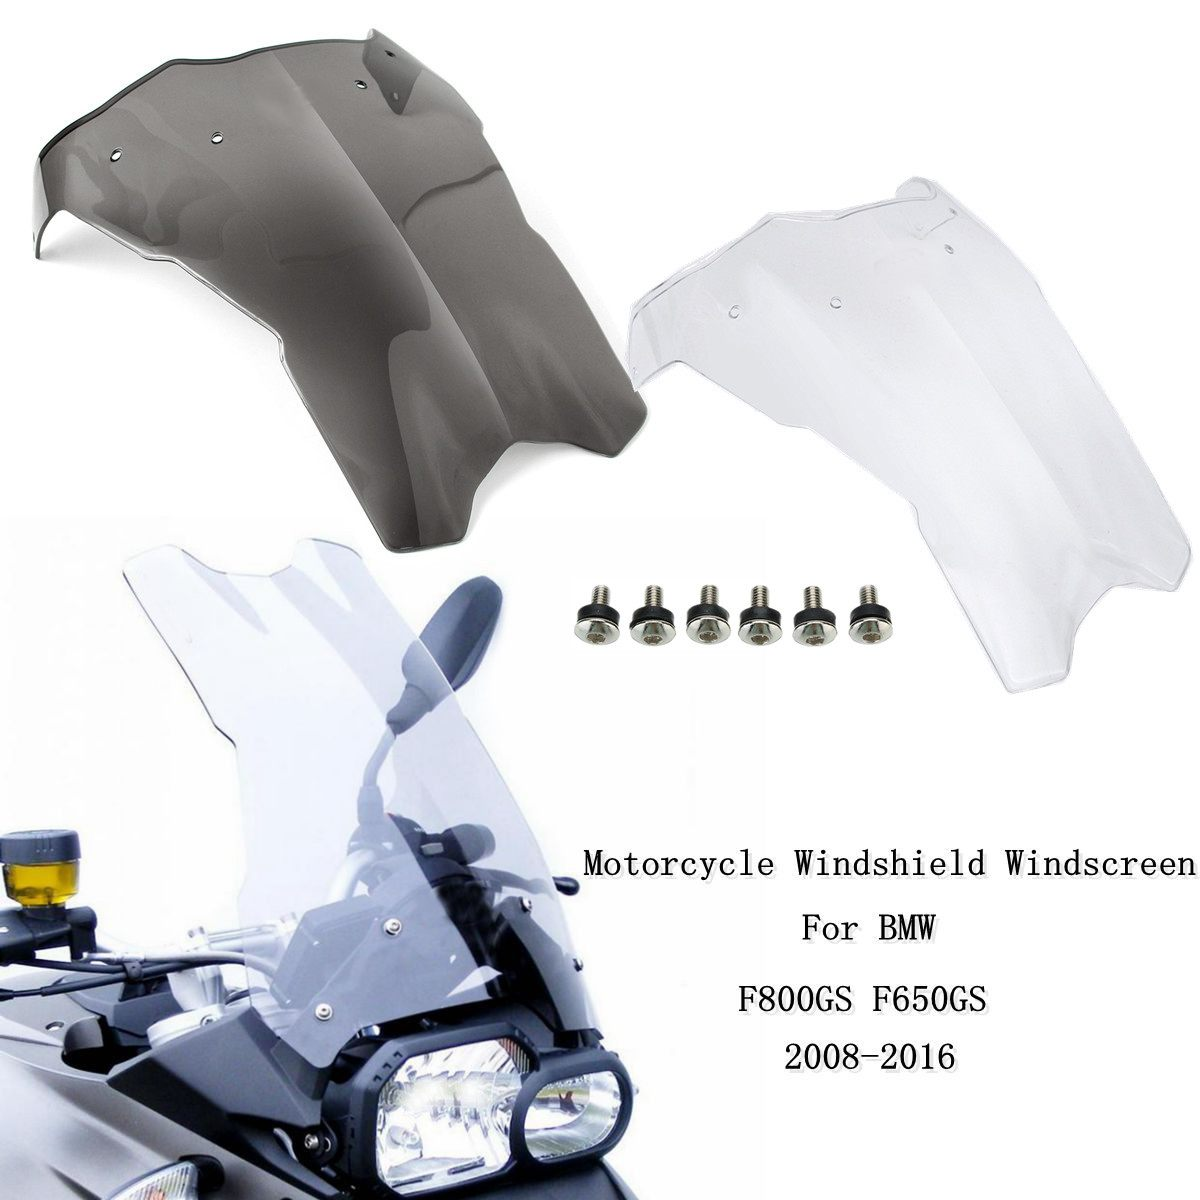 Motorcycle Wind Deflectors Windshield Windscreen Fairing Part for BMW F800GS F650GS 2008-2016Motorcycle Wind Deflectors Windshield Windscreen Fairing Part for BMW F800GS F650GS 2008-2016